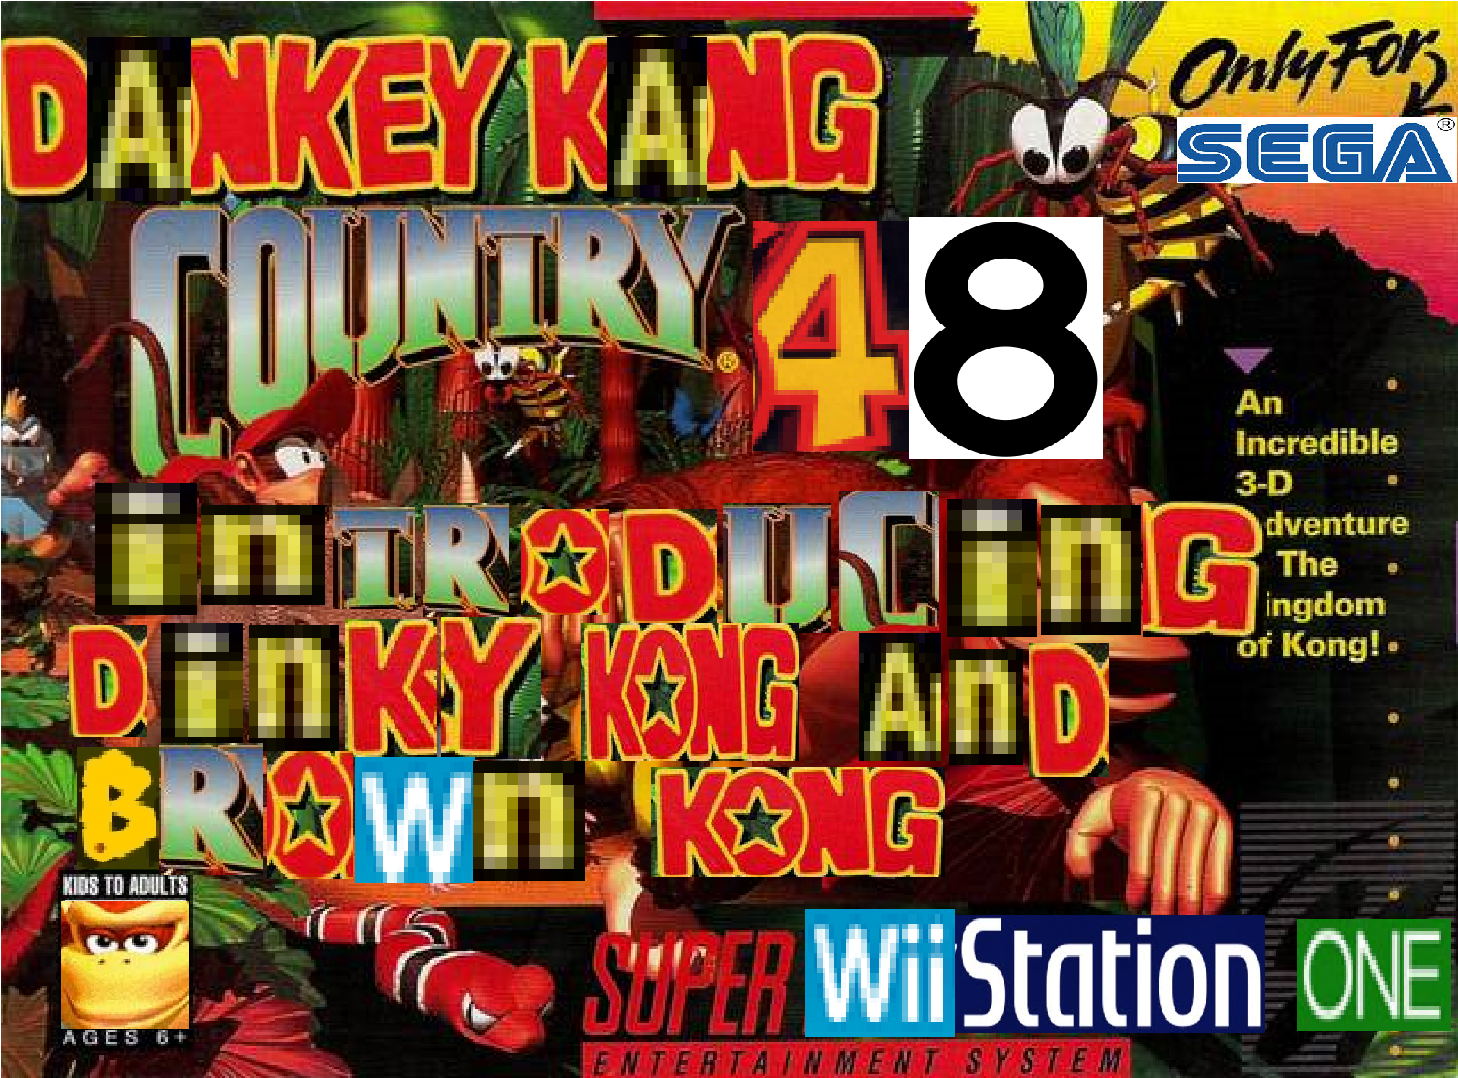 dankey kang country 48 expand dong know your meme